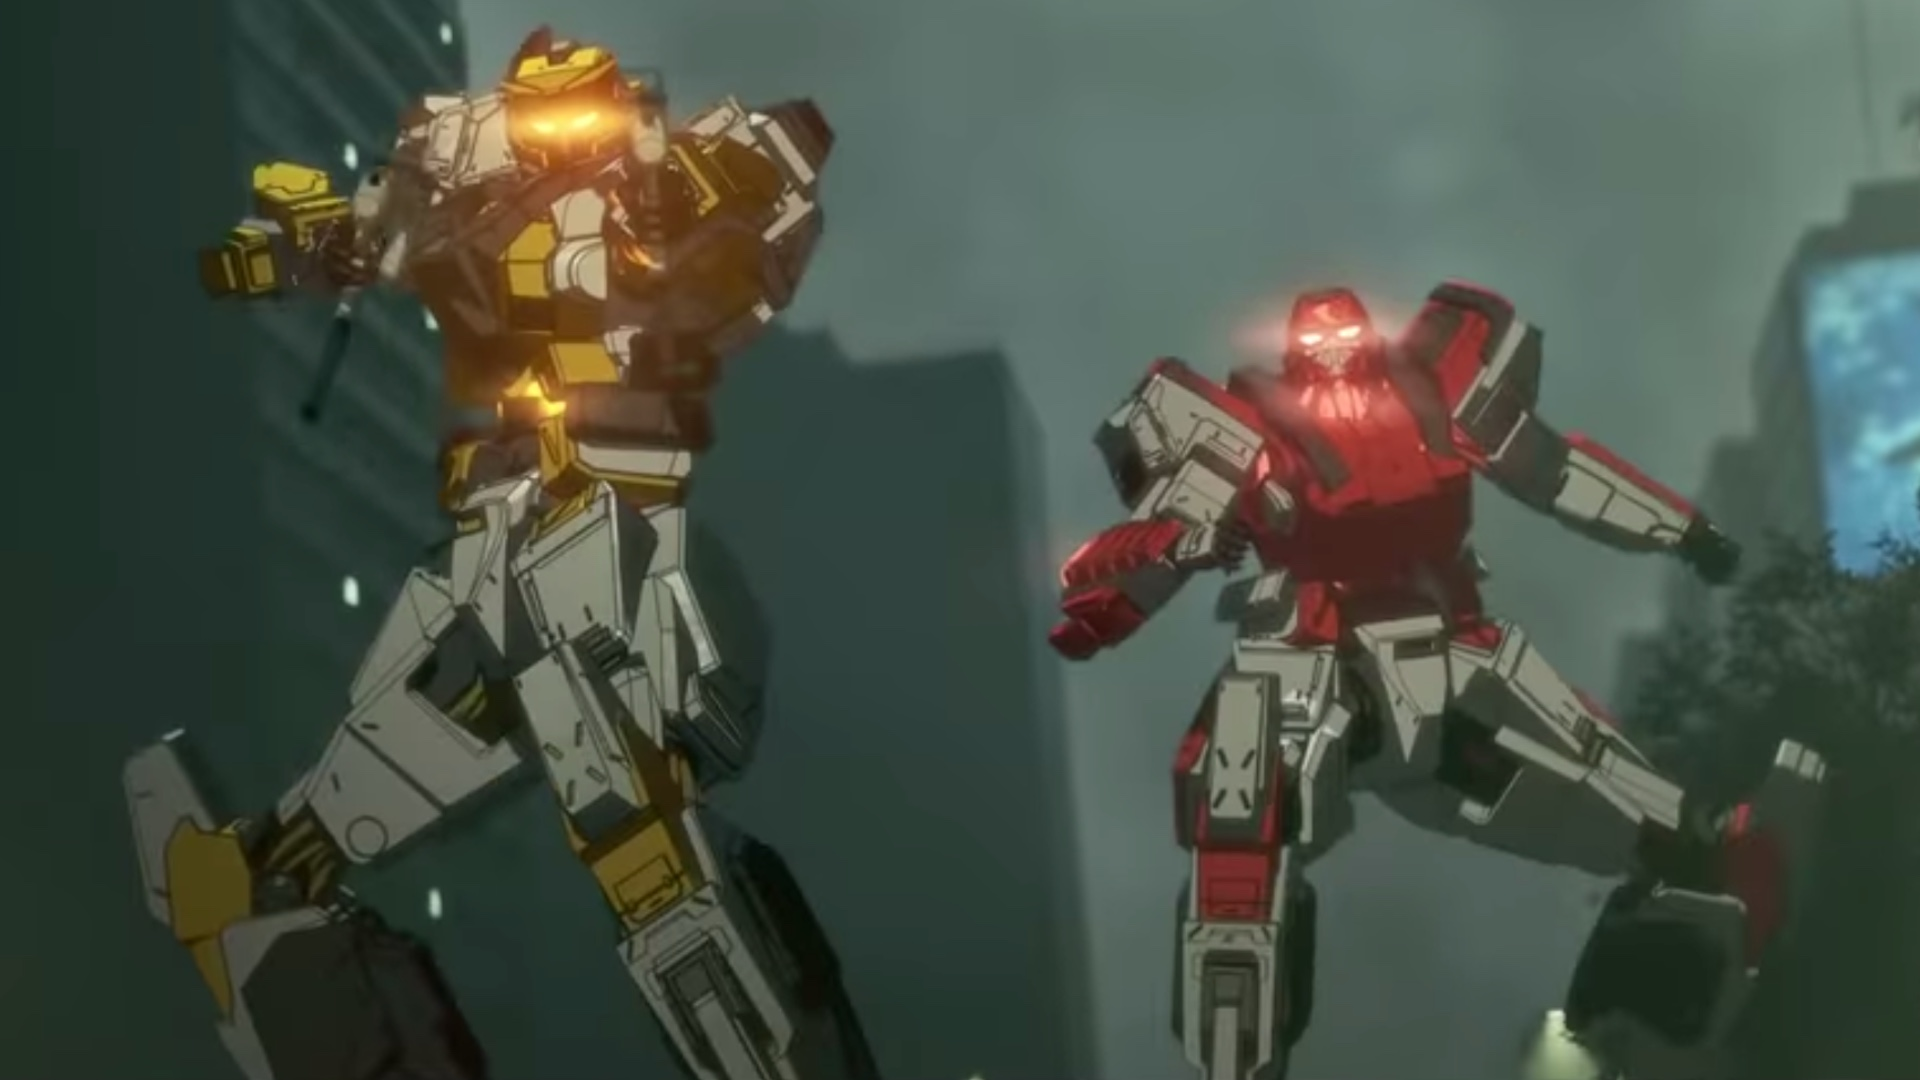 Exciting First Full Length Trailer for GENLOCK Has Dropped 1920x1080